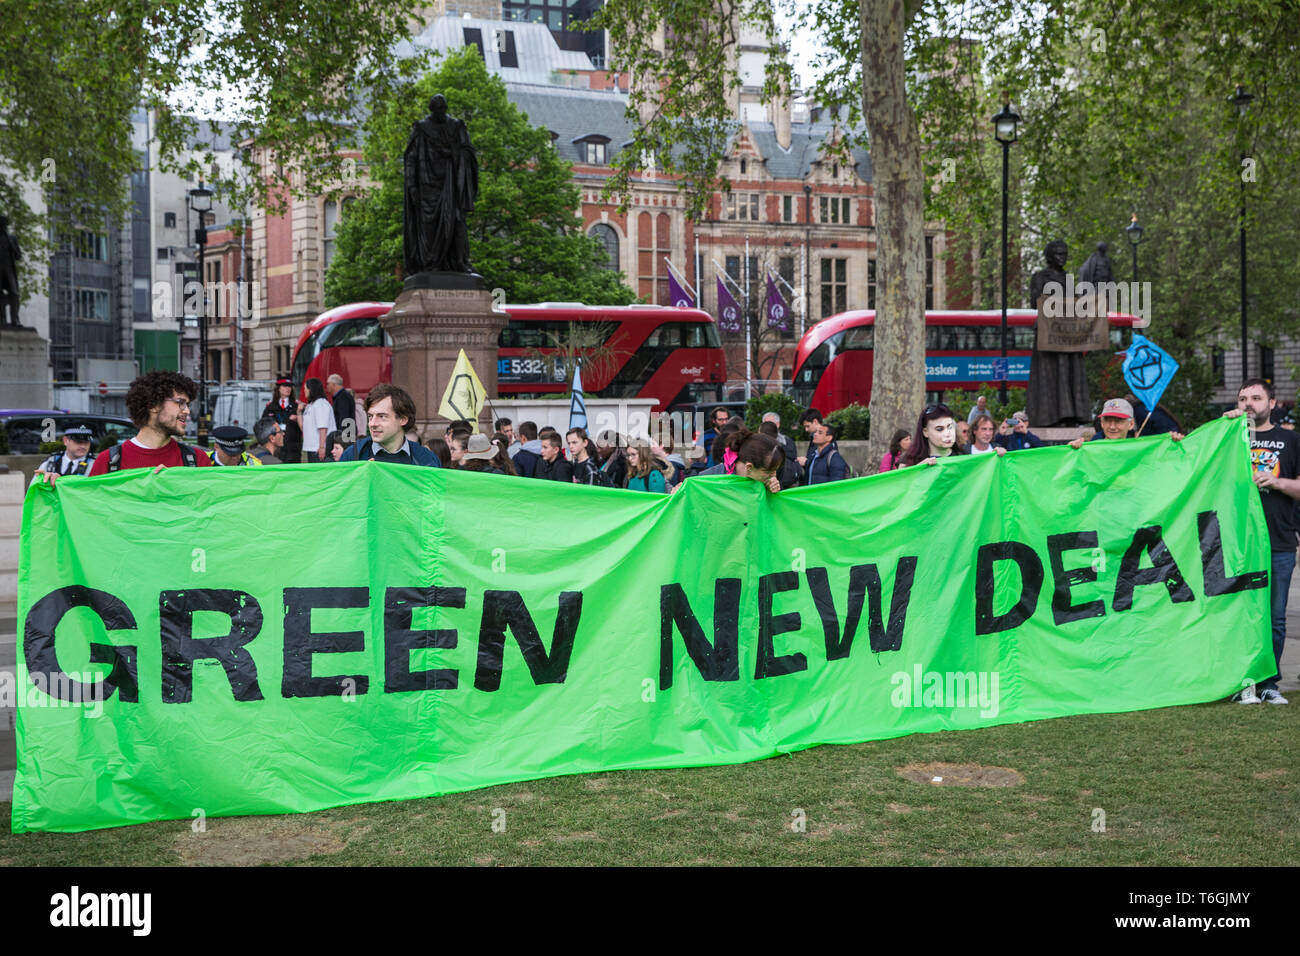 London, UK. 1st May, 2019. A Green New Deal banner among climate protesters attending a Declare A Climate Emergency Now demonstration in Parliament Square organised to coincide with a motion in the House of Commons to declare an environment and climate emergency tabled by Leader of the Opposition Jeremy Corbyn. The motion, which does not legally compel the Government to act, was passed without a vote. Credit: Mark Kerrison/Alamy Live News Stock Photo